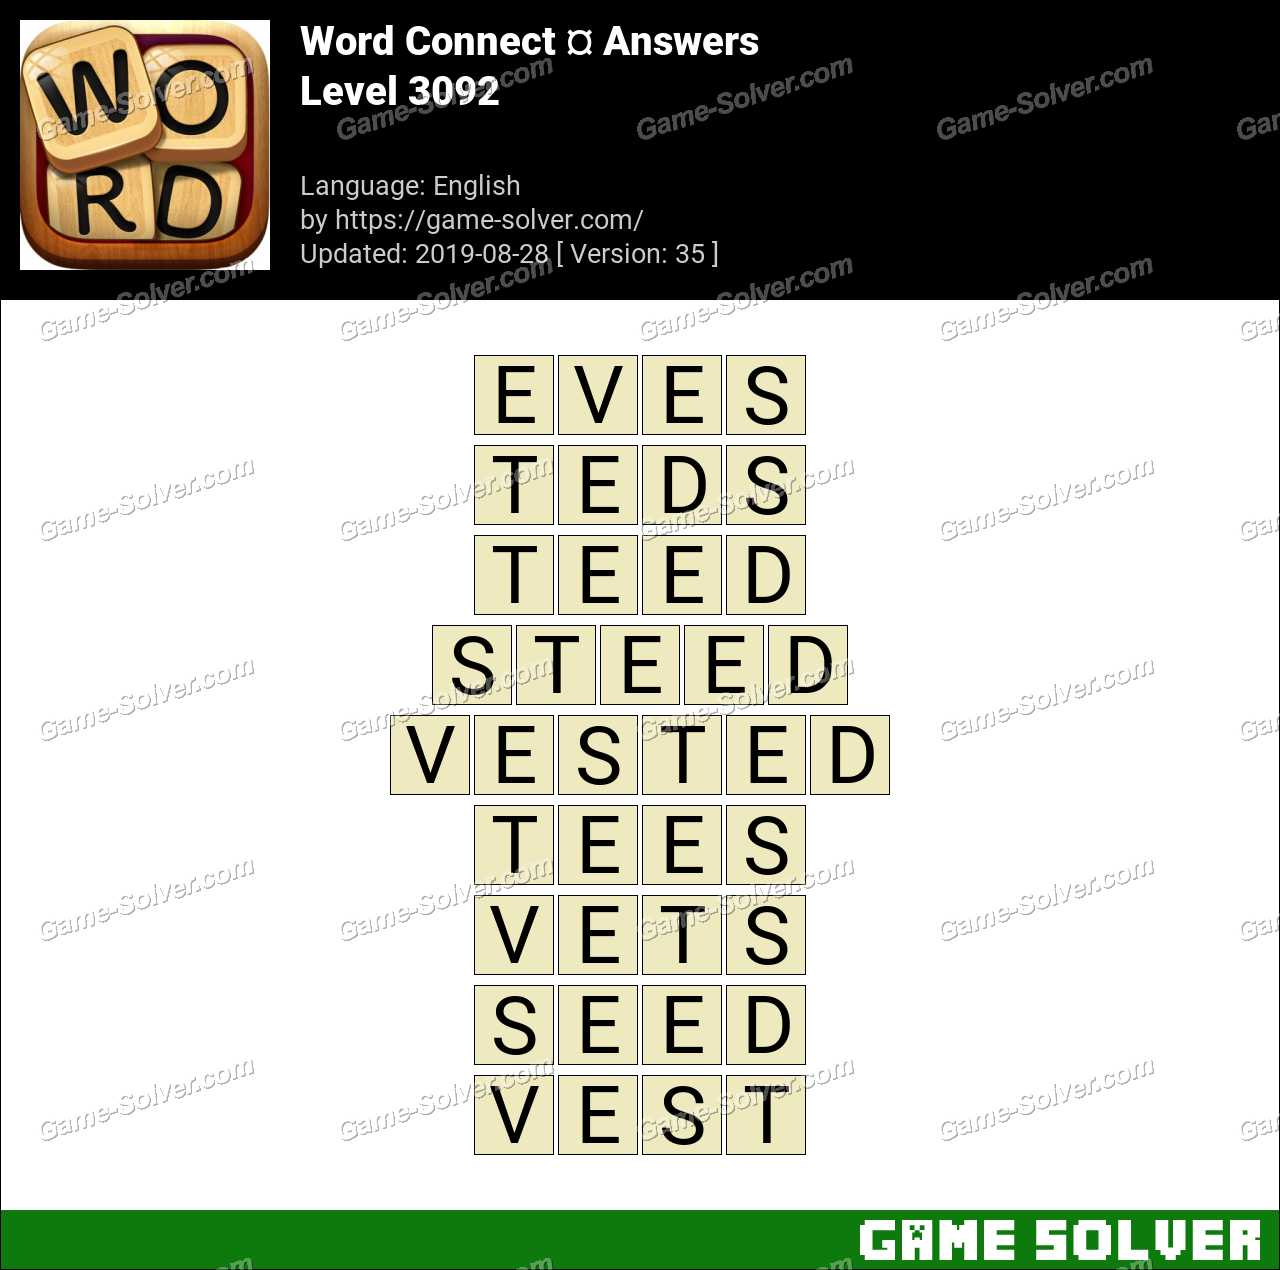 Word Connect Level 3092 Answers